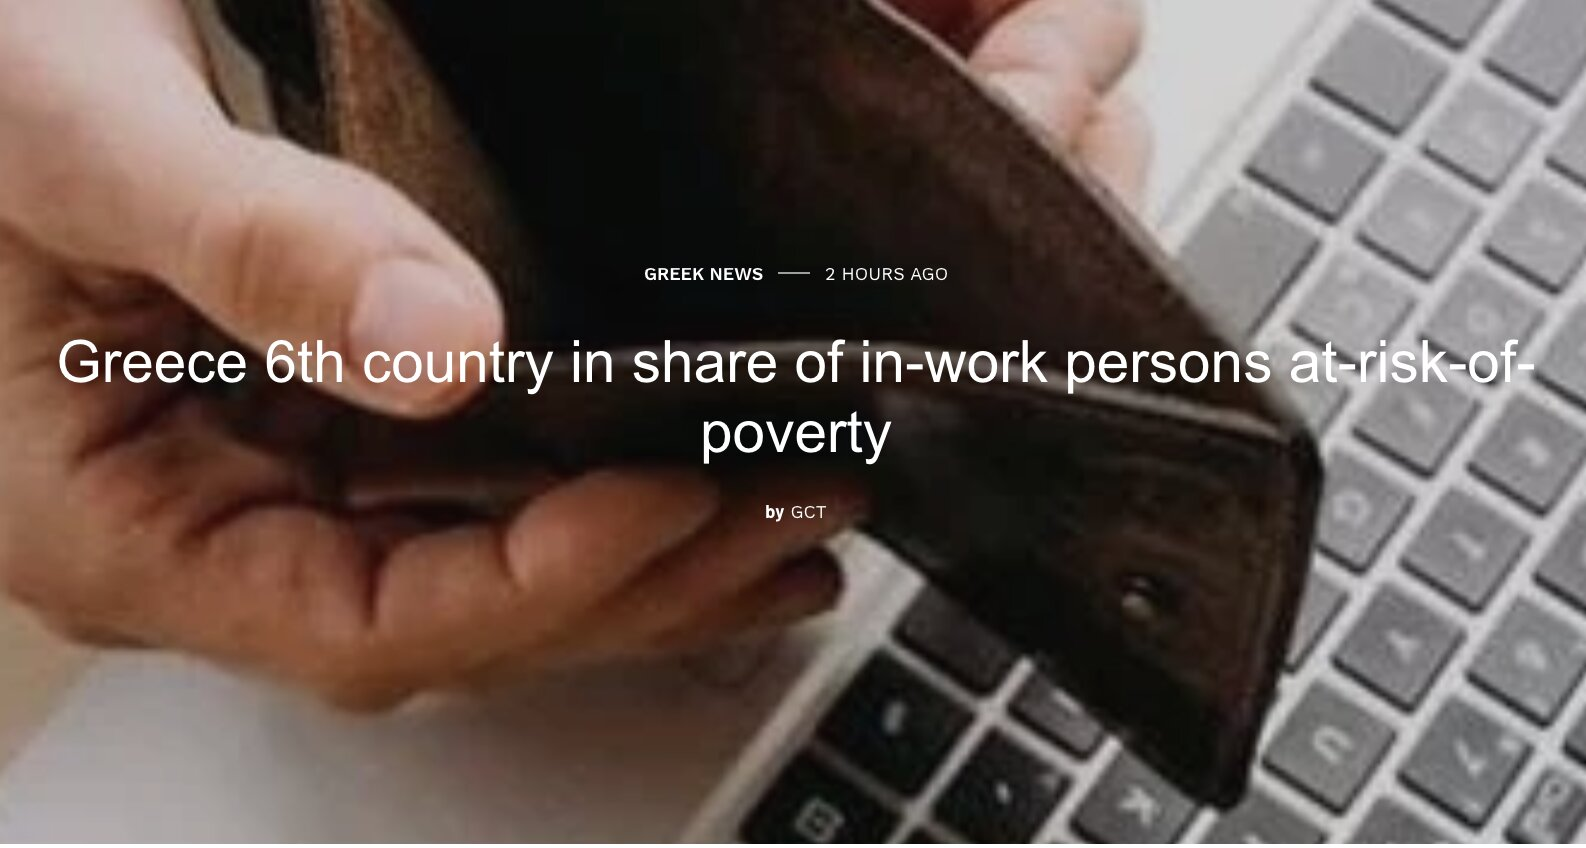 Greece 6th country in share of in-work persons at-risk-of-poverty